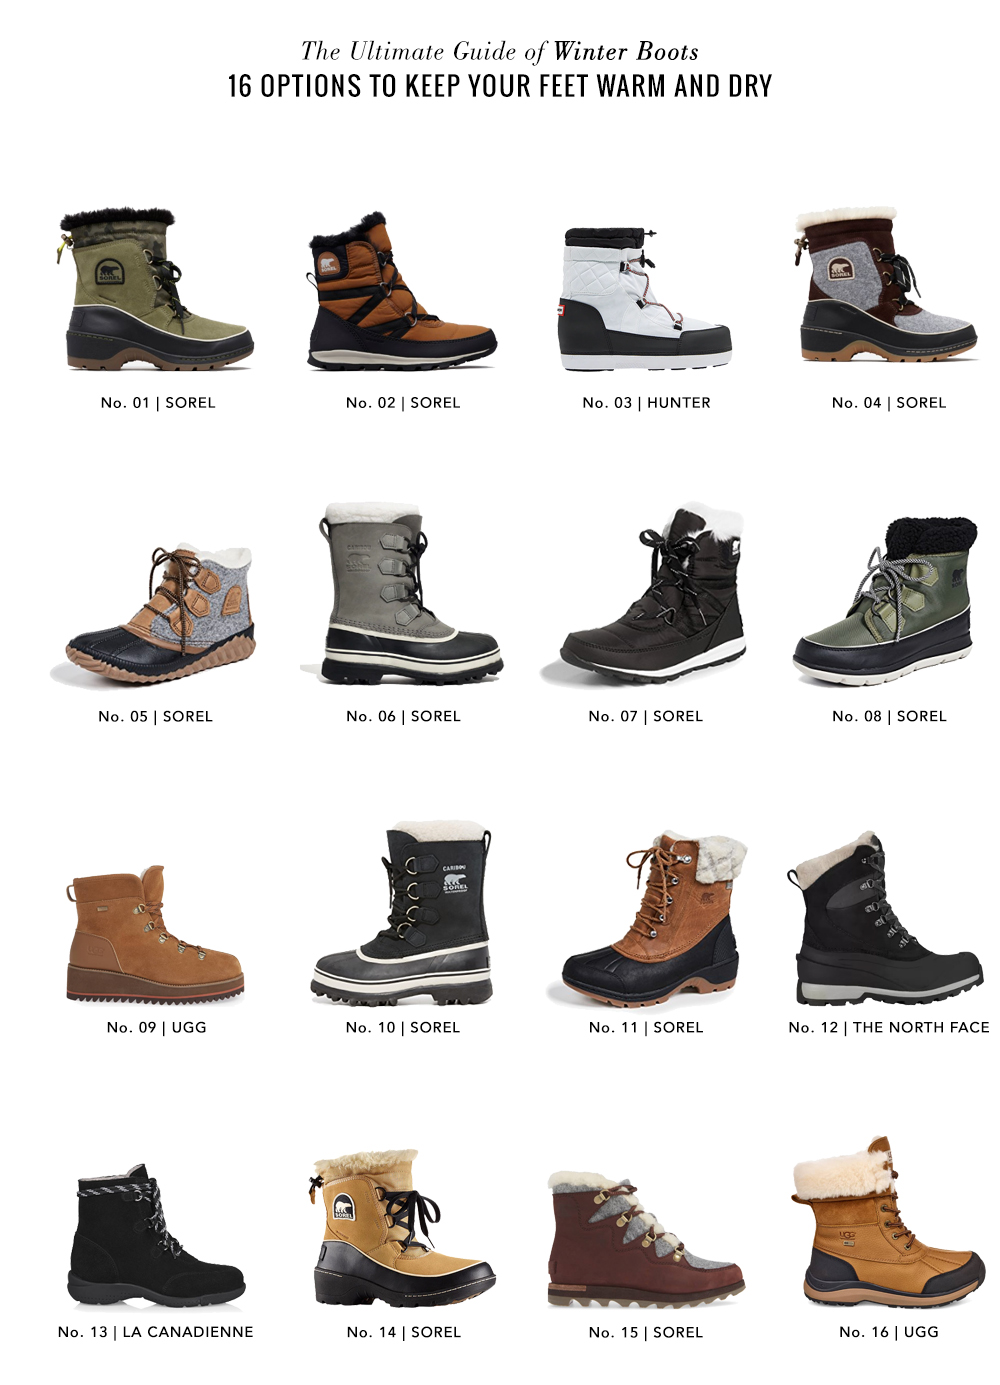 Shopping File: 16 Winter Boots to Keep Your Feet Warm and Dry